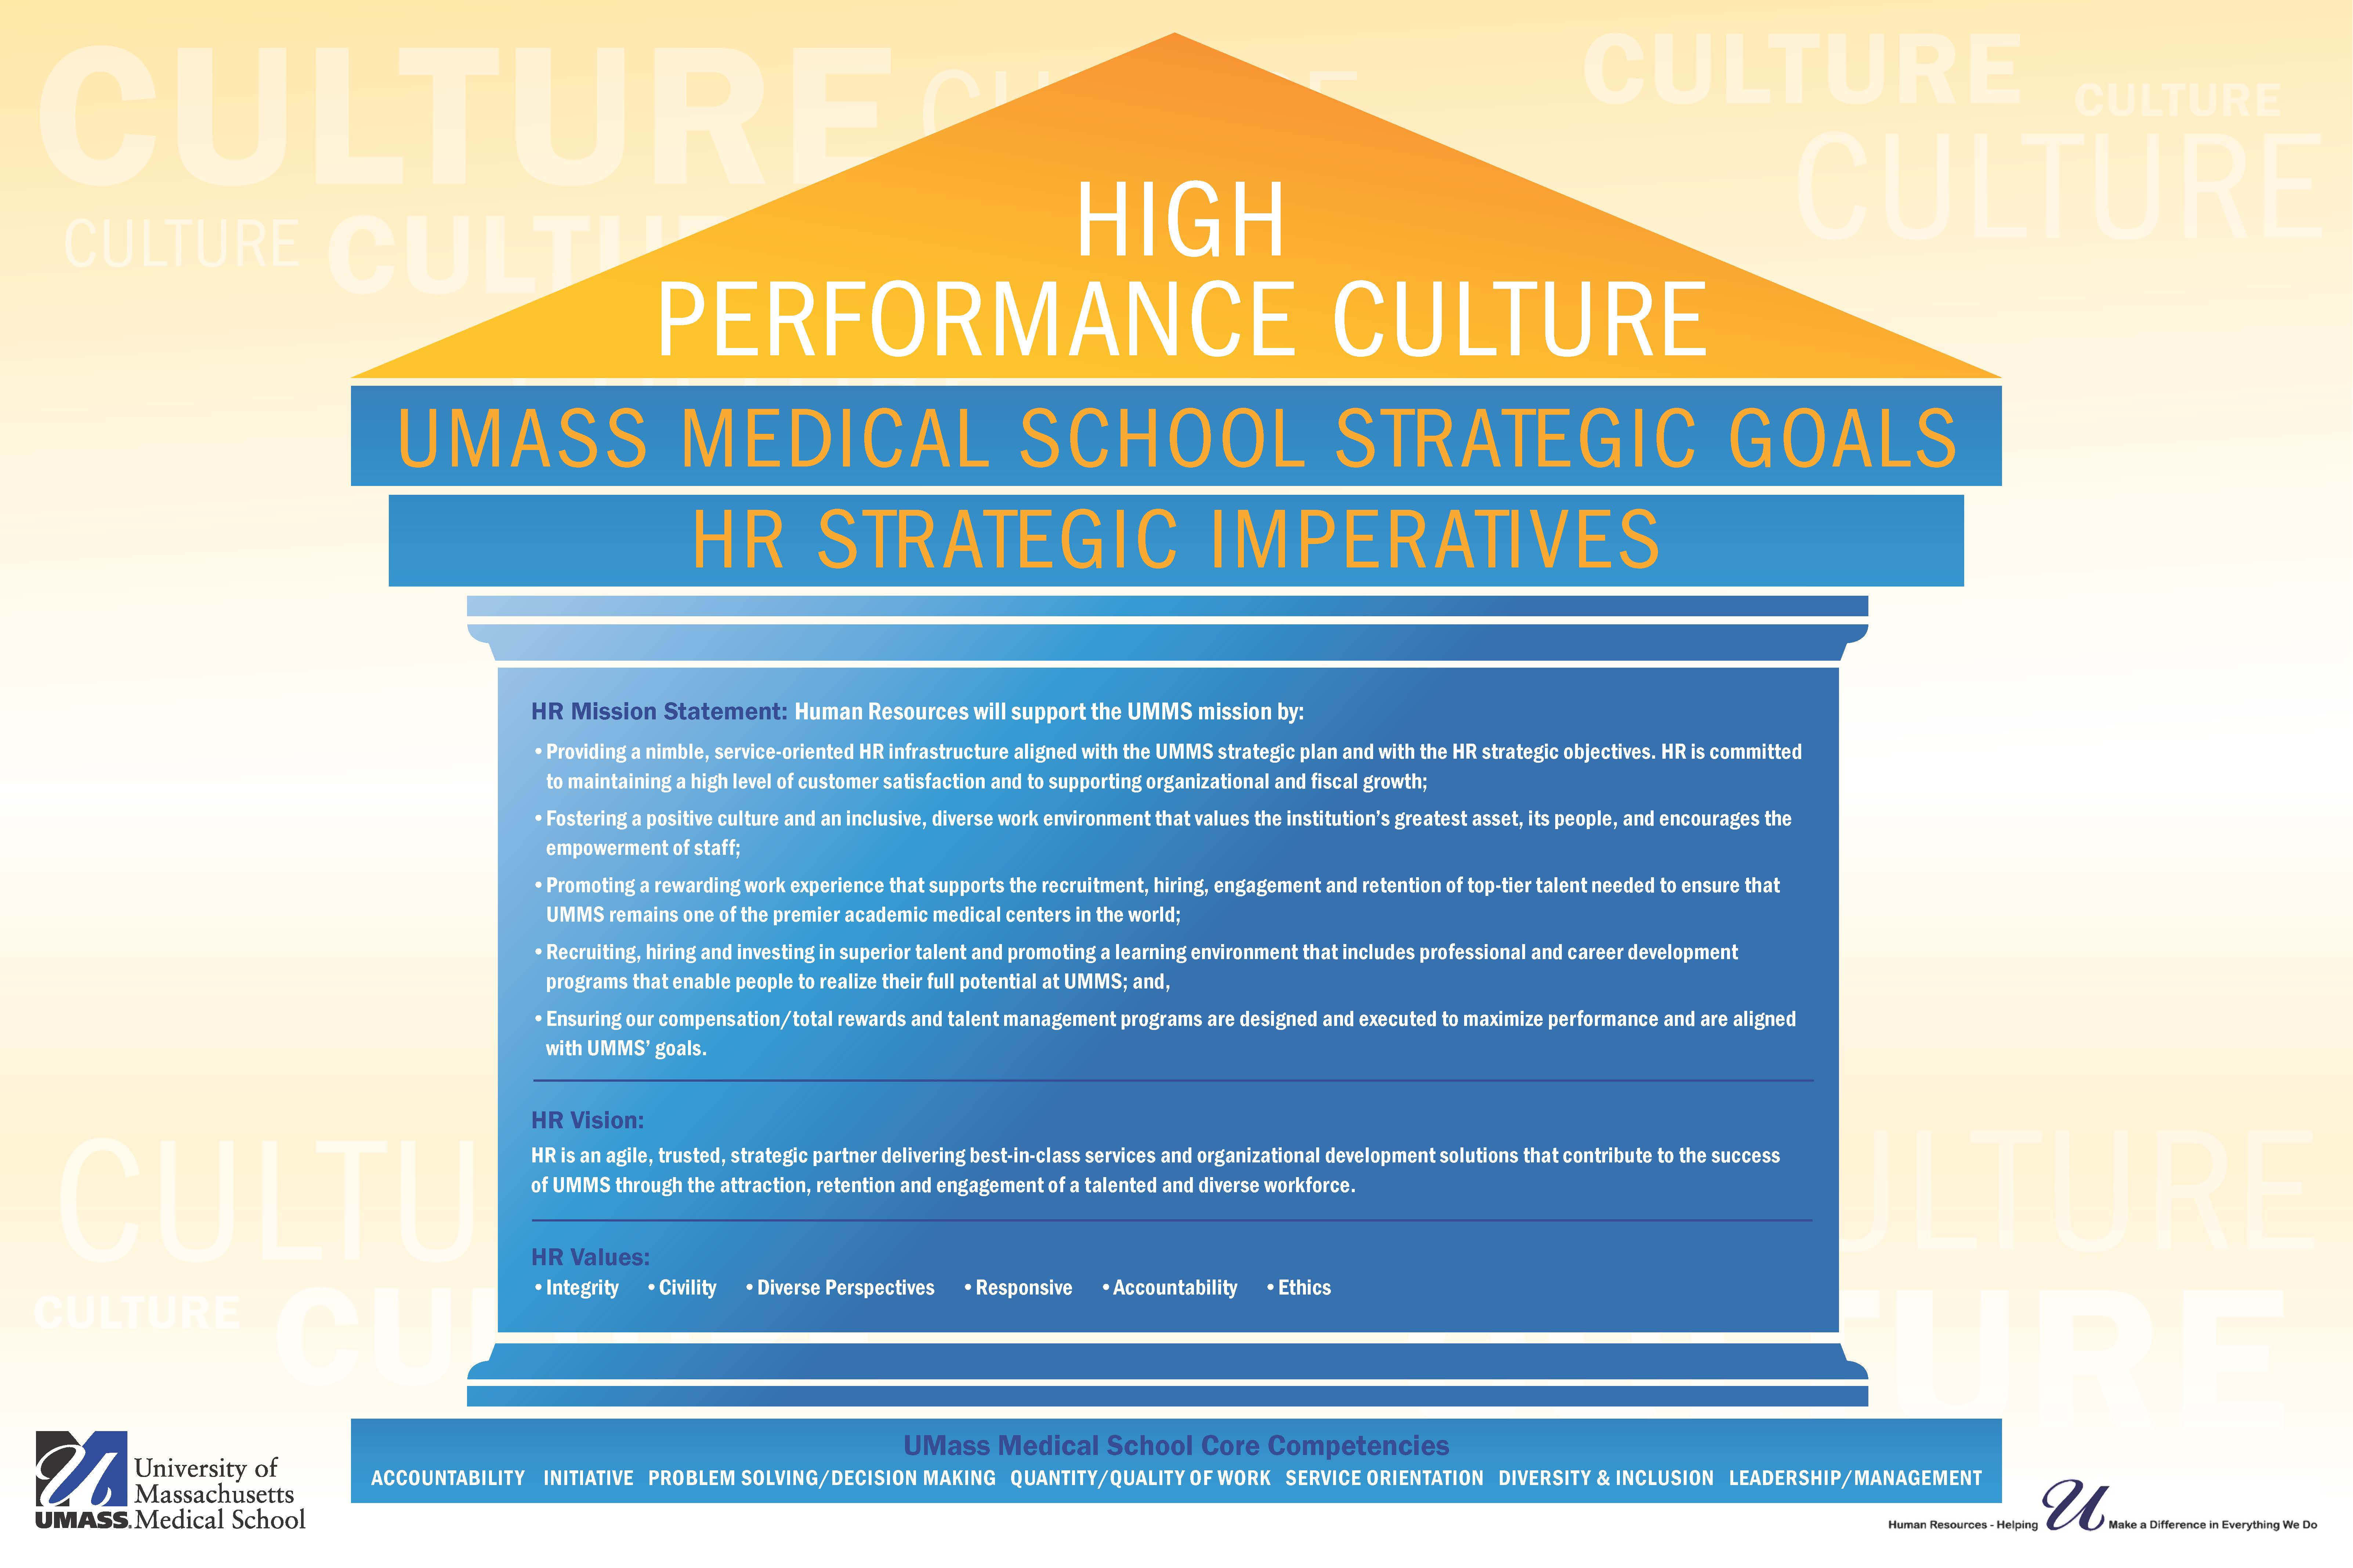 Illustration of building with pillars - High Performance Culture